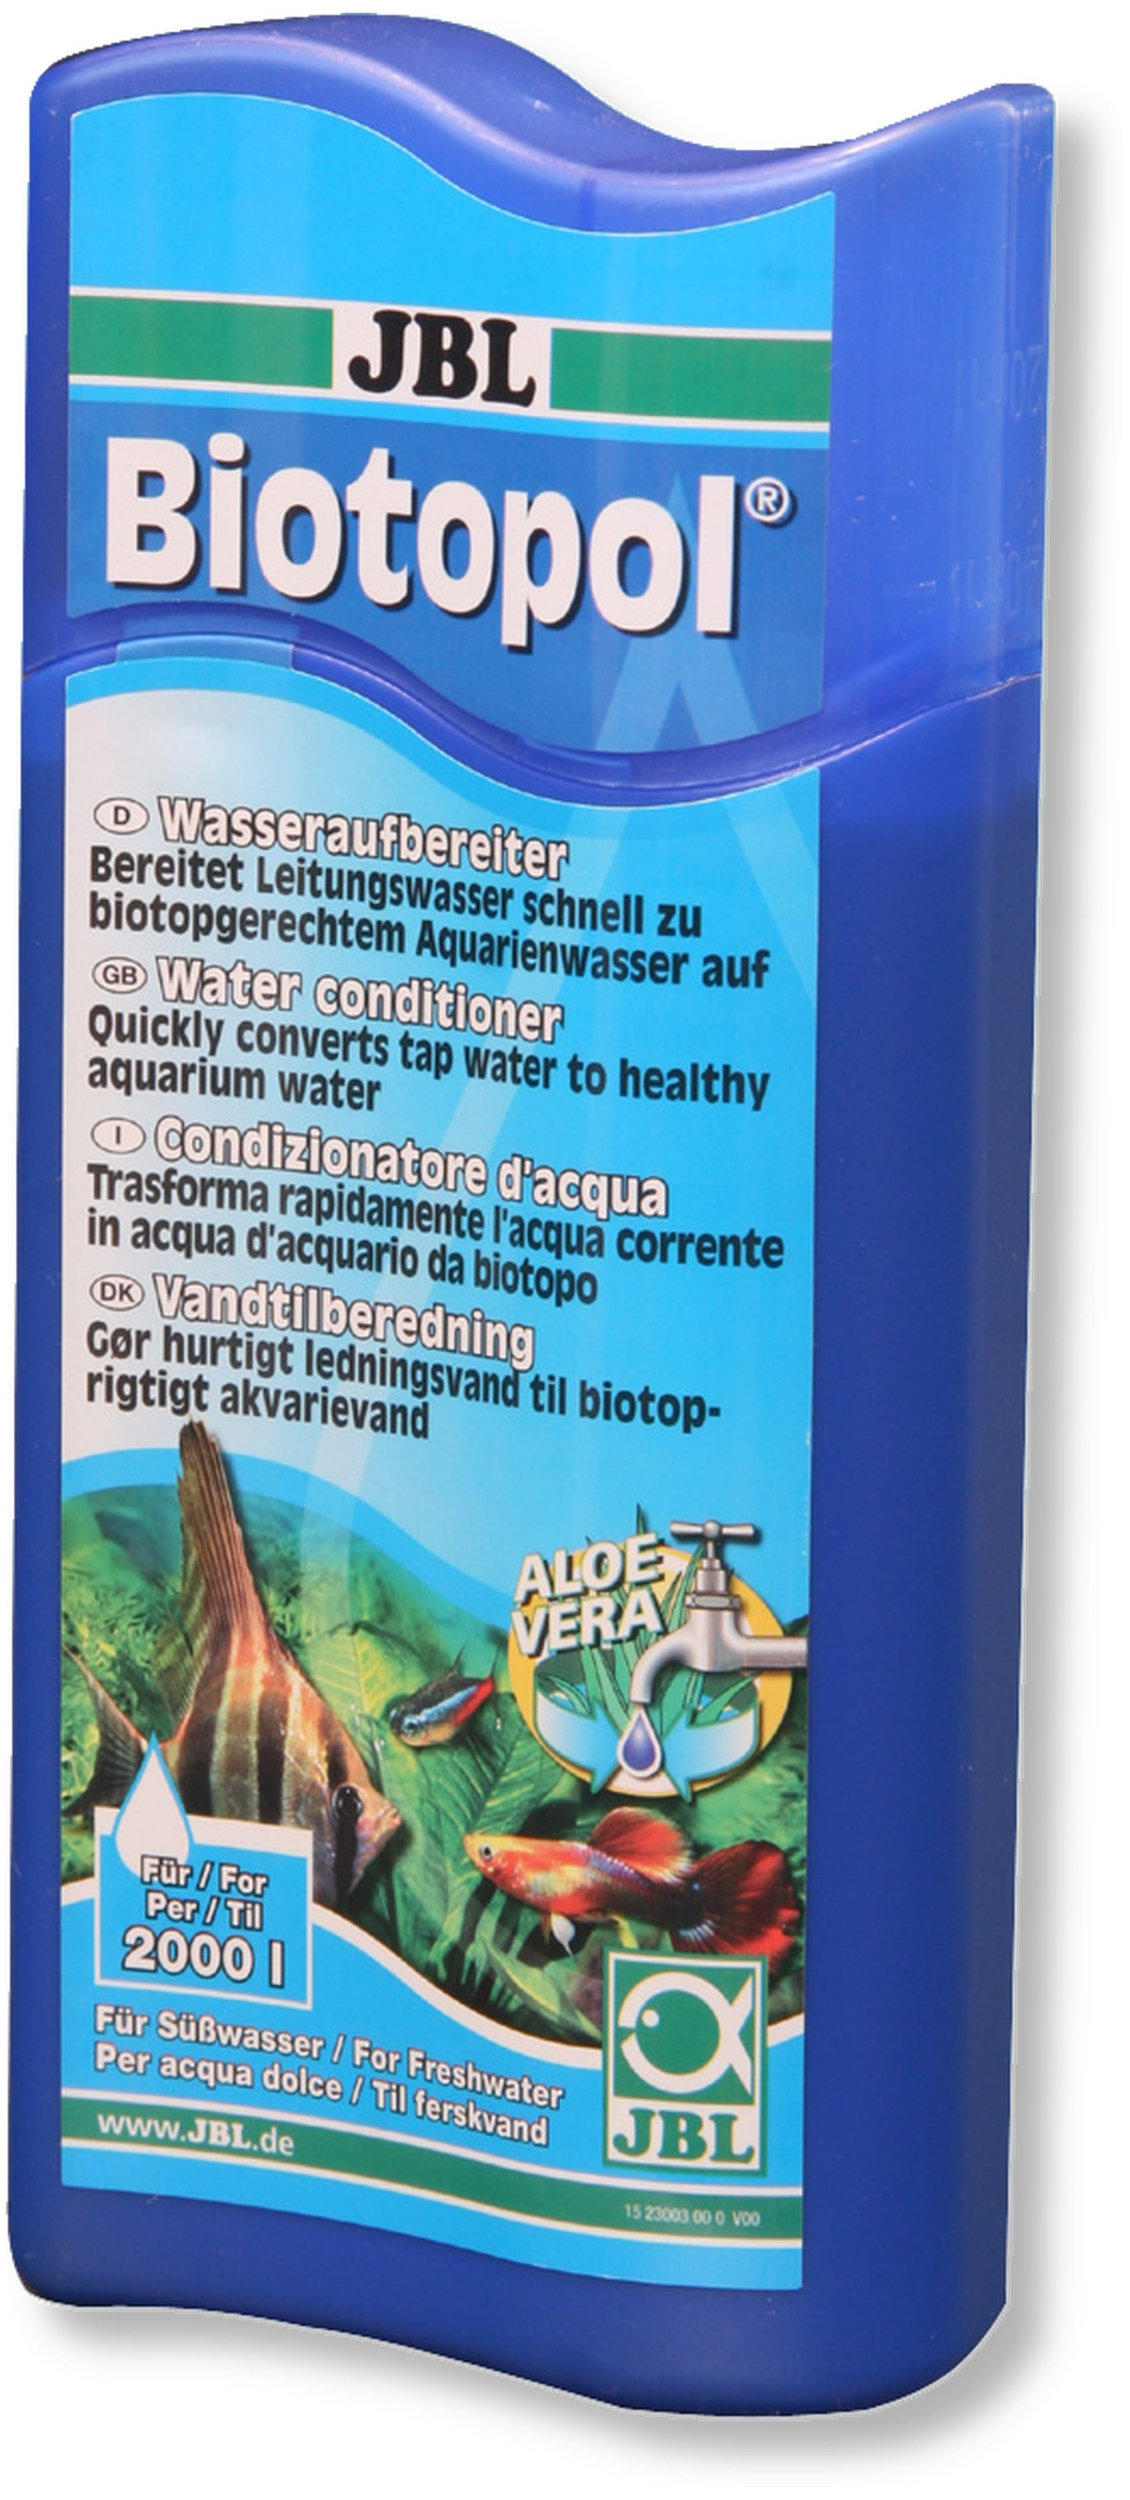 JBL Biotopol 500 ml conditionne l\'eau de votre aquarium d\'eau douce